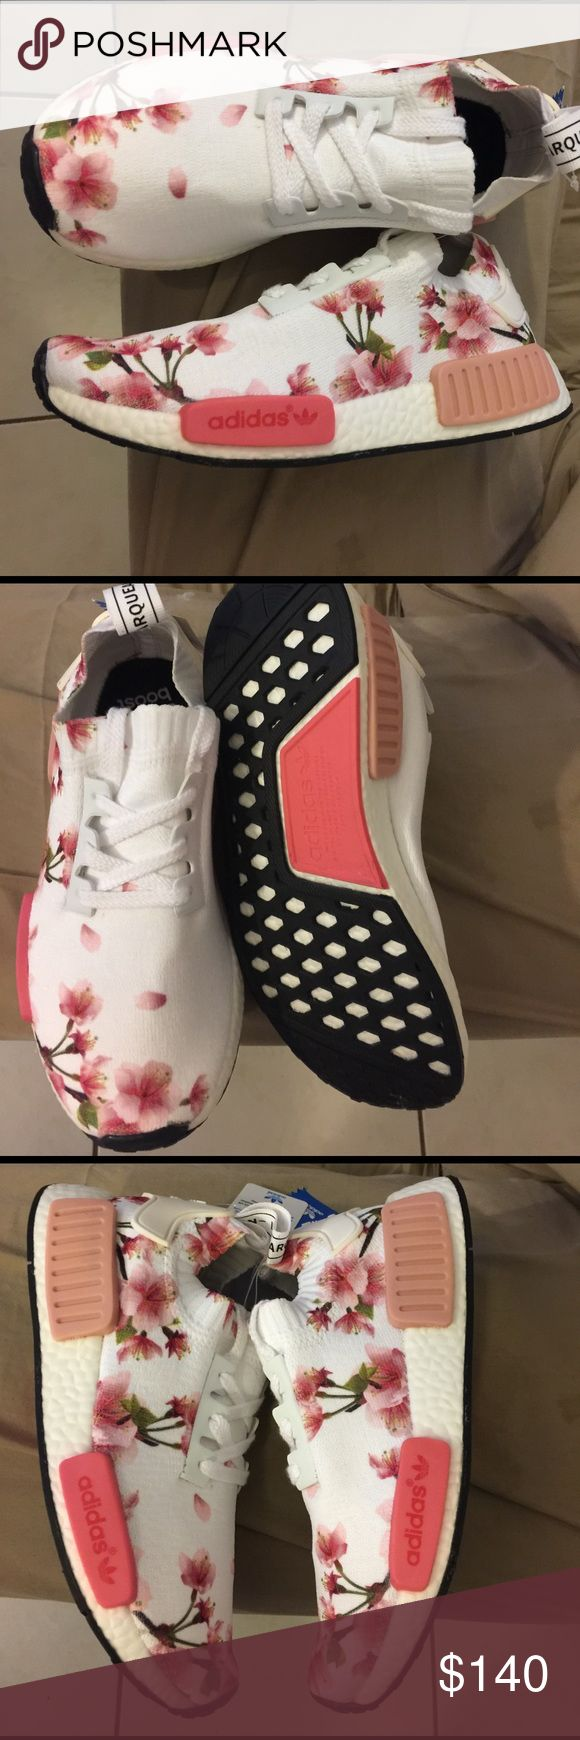 adidas nmd primeknit adidas nmd primeknit for women's size us 6,6.5,and 7.5 color pink/white as pictures, new authentic ALL SNEAKERS WHITH ORIGINAL BOX beautiful sneakers for any occasion........... SNEAKERS ARE CUSTOMIZED Adidas Shoes Athletic Shoes